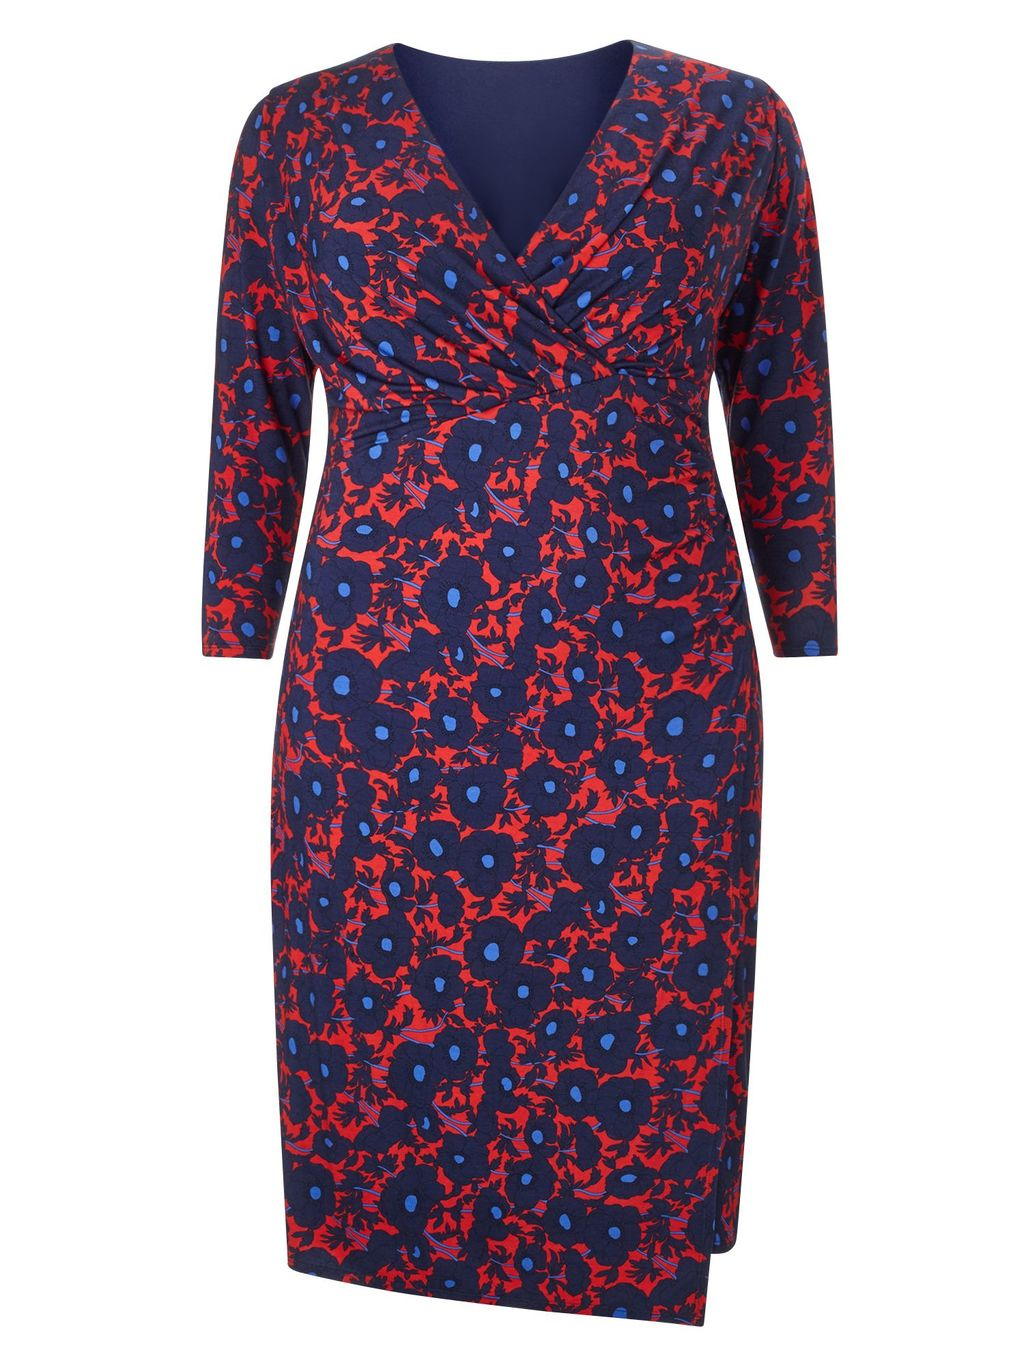 Grace Dress, Multi Coloured - style: faux wrap/wrap; neckline: v-neck; secondary colour: true red; predominant colour: navy; occasions: evening, creative work; length: just above the knee; fit: body skimming; fibres: viscose/rayon - stretch; sleeve length: 3/4 length; sleeve style: standard; pattern type: fabric; pattern: florals; texture group: jersey - stretchy/drapey; multicoloured: multicoloured; season: a/w 2015; wardrobe: highlight